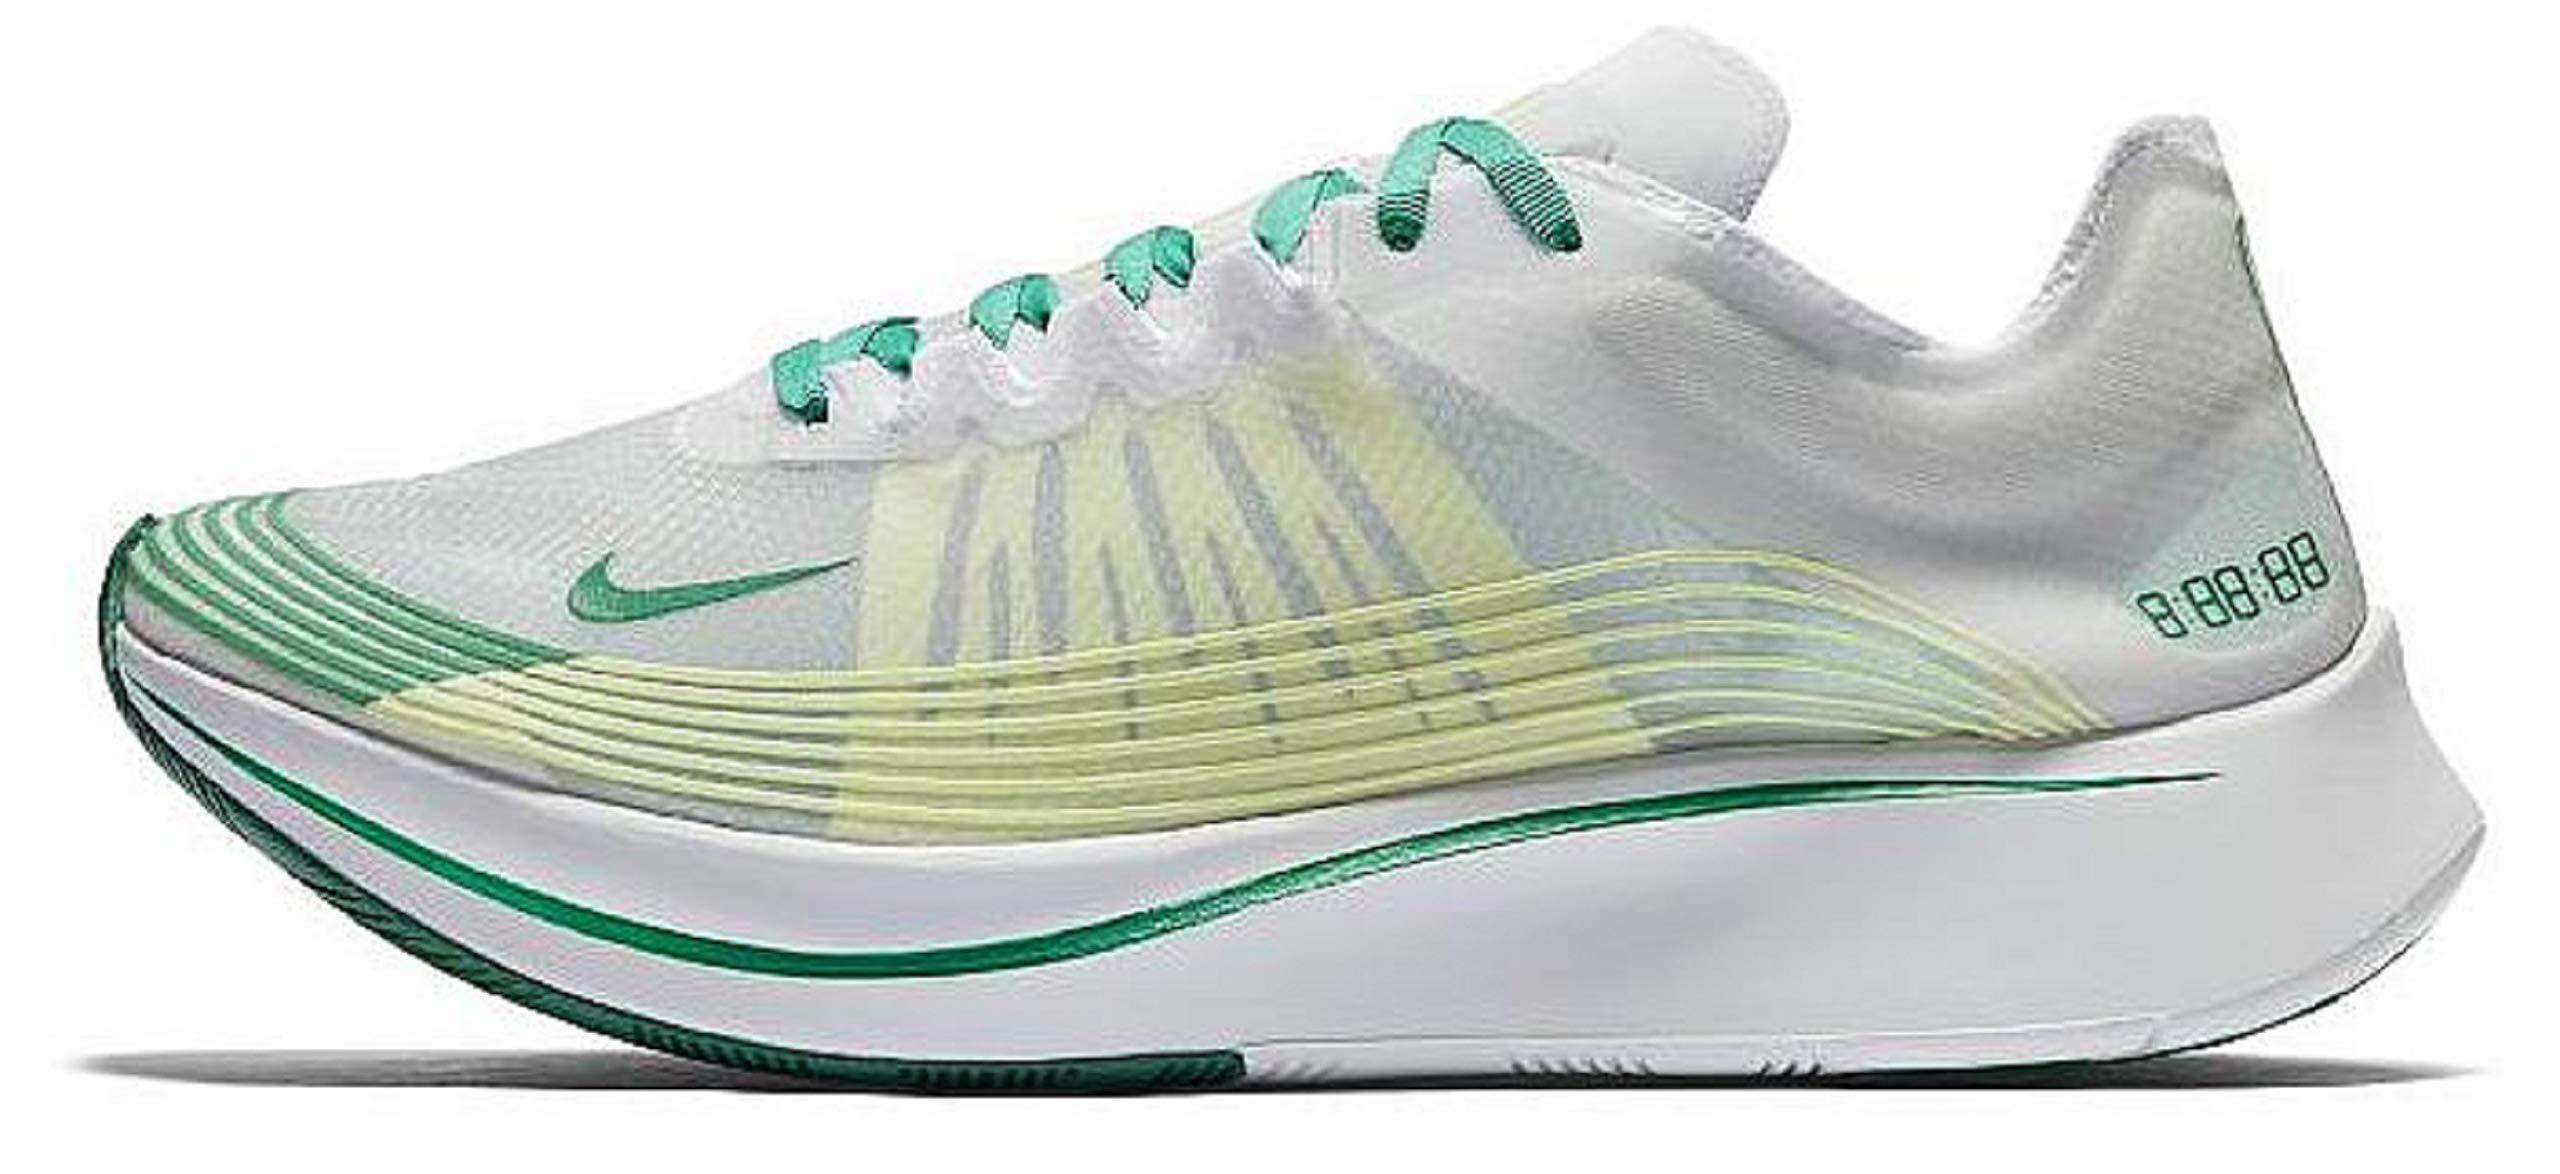 cc025eb59491 Nike NikeLab Zoom Fly SP Hong Kong White-Lucid Green SZ 10  AJ9282-